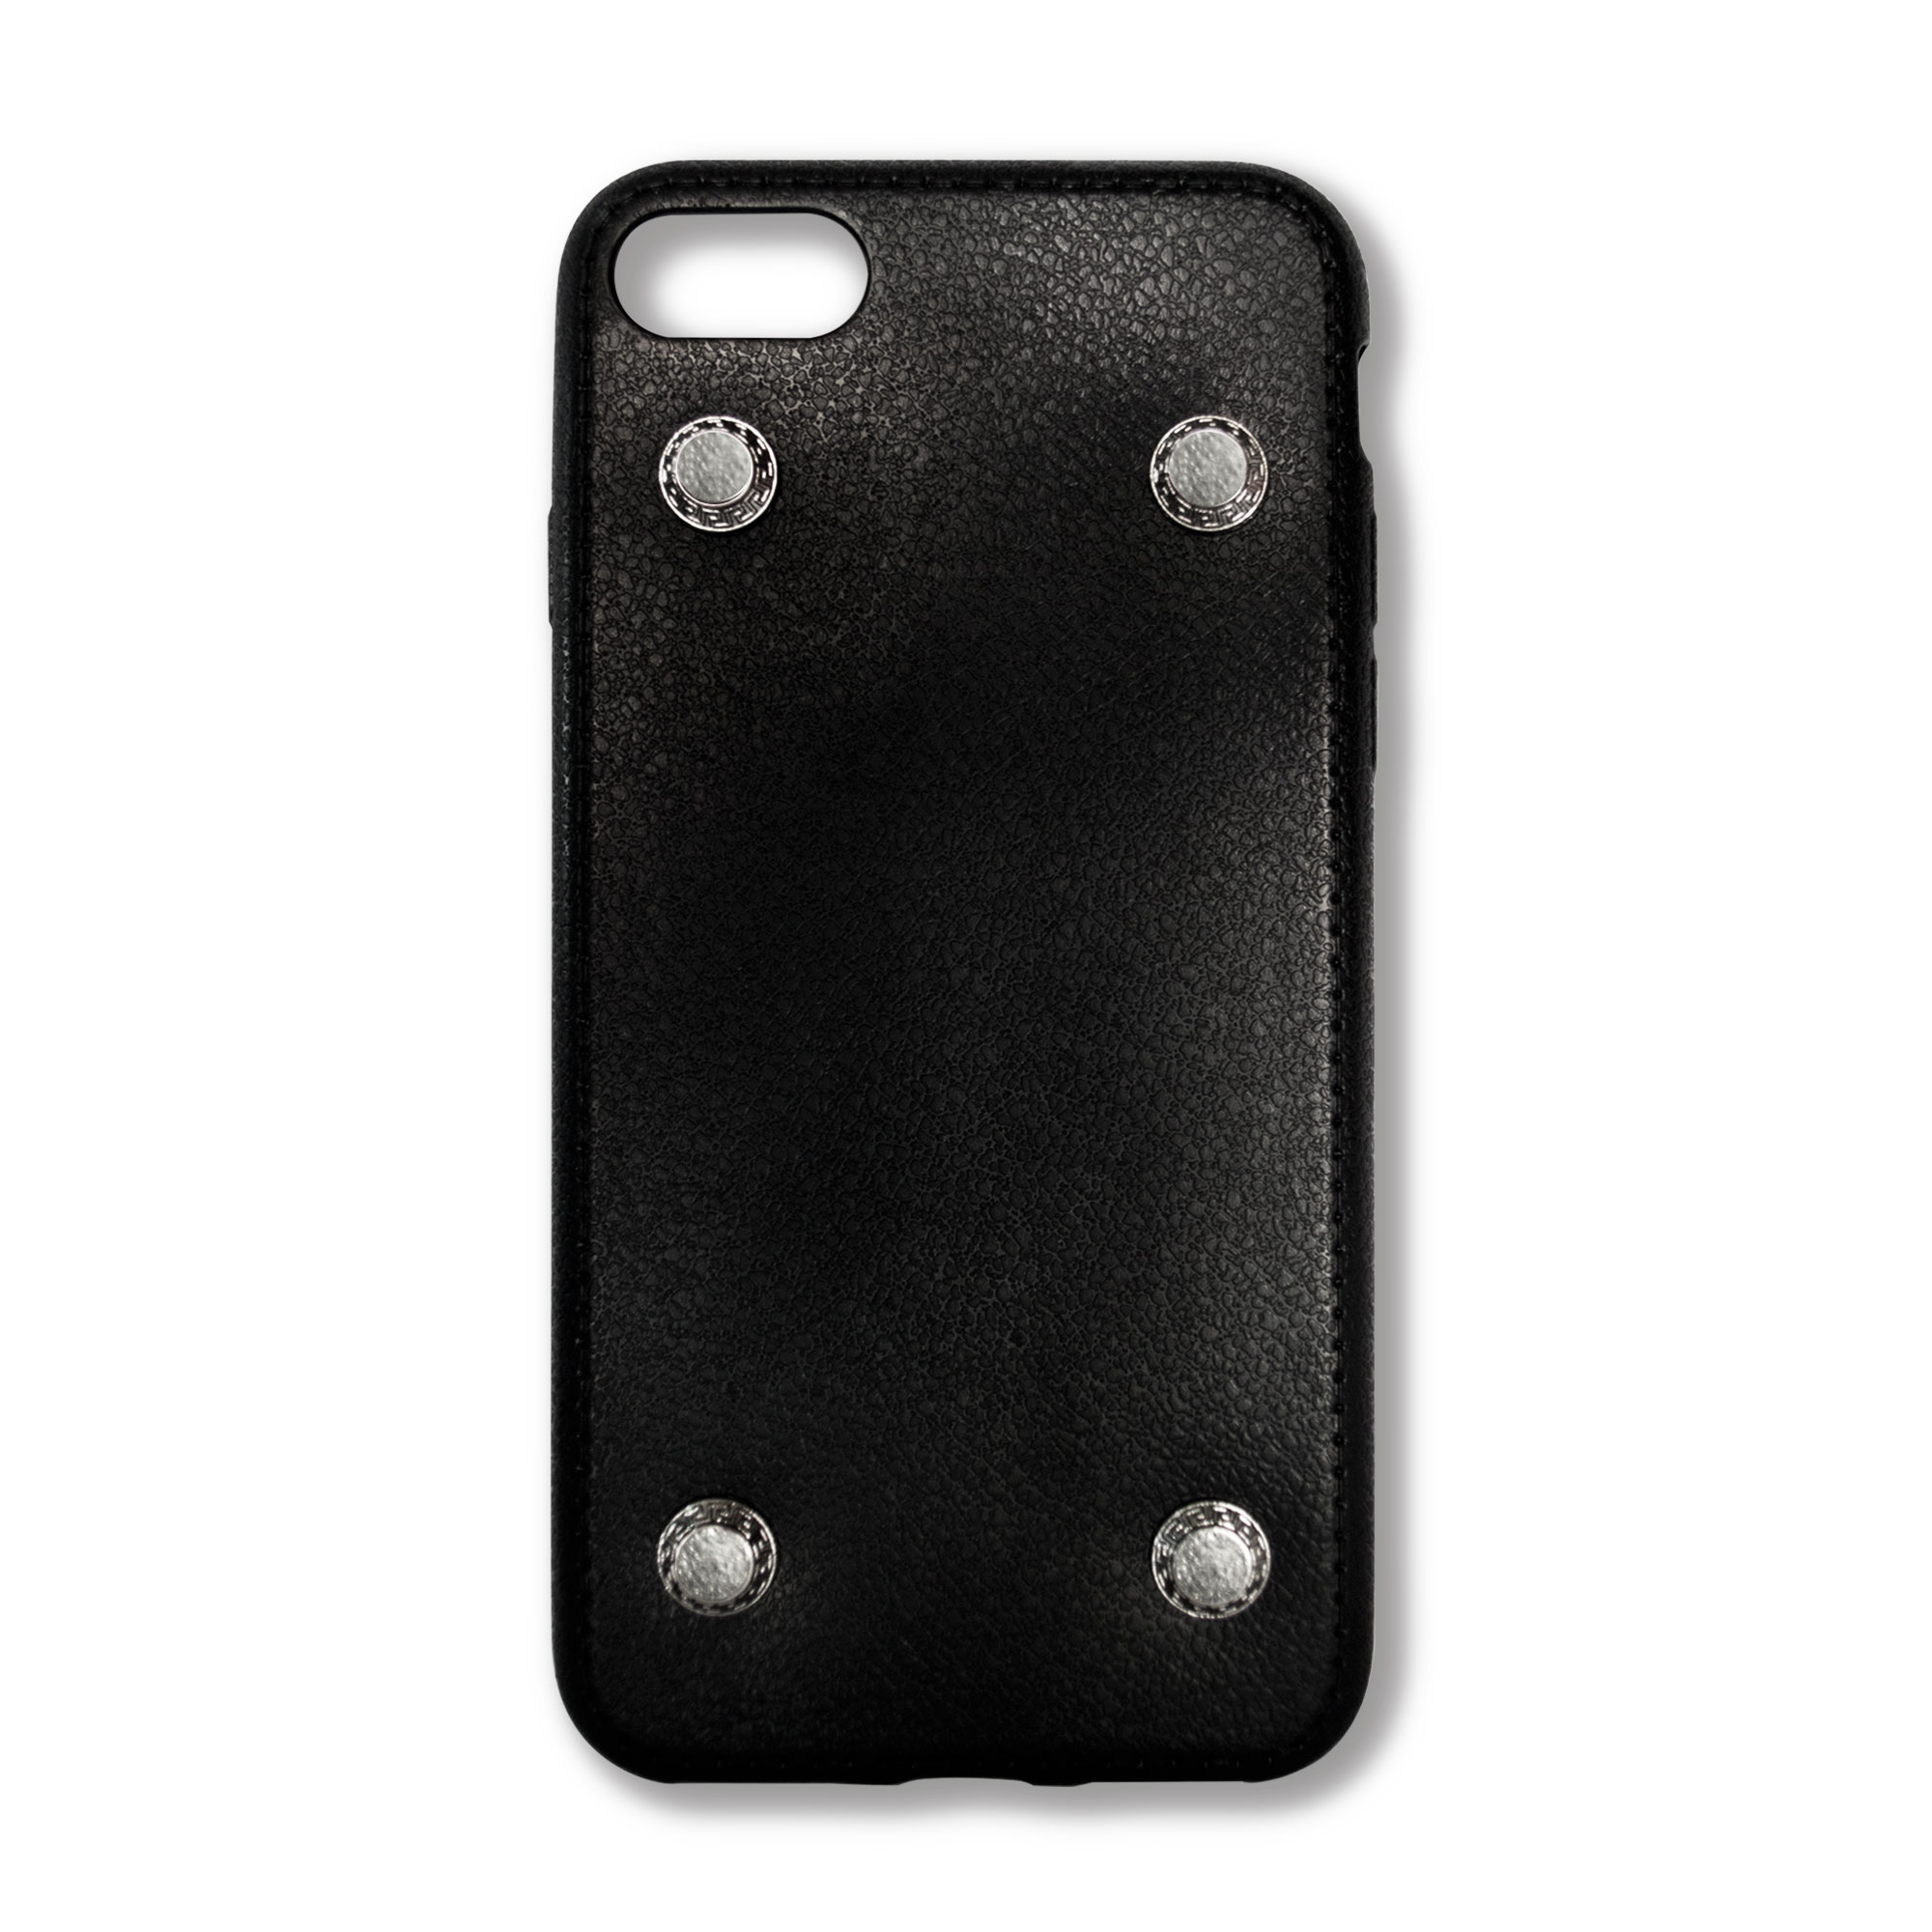 Far East Case with Silver Studs - Black Soft Case